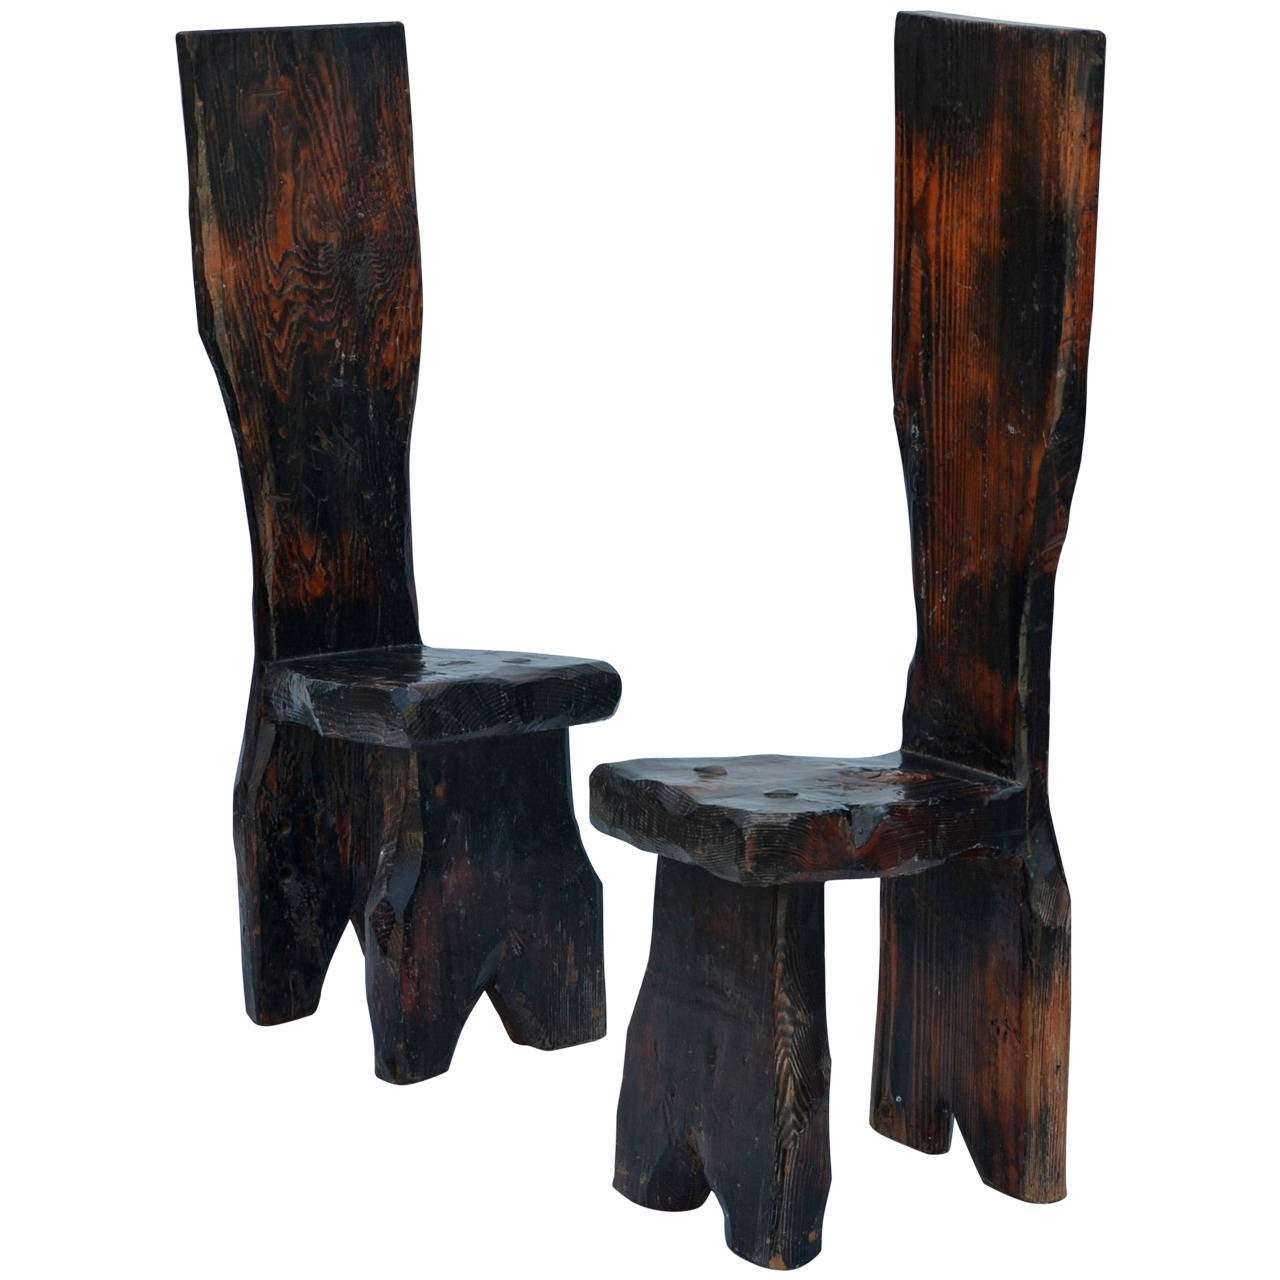 cool chairs for sale cheap chair covers calgary unique pair of sculptural oregon pine wabi side